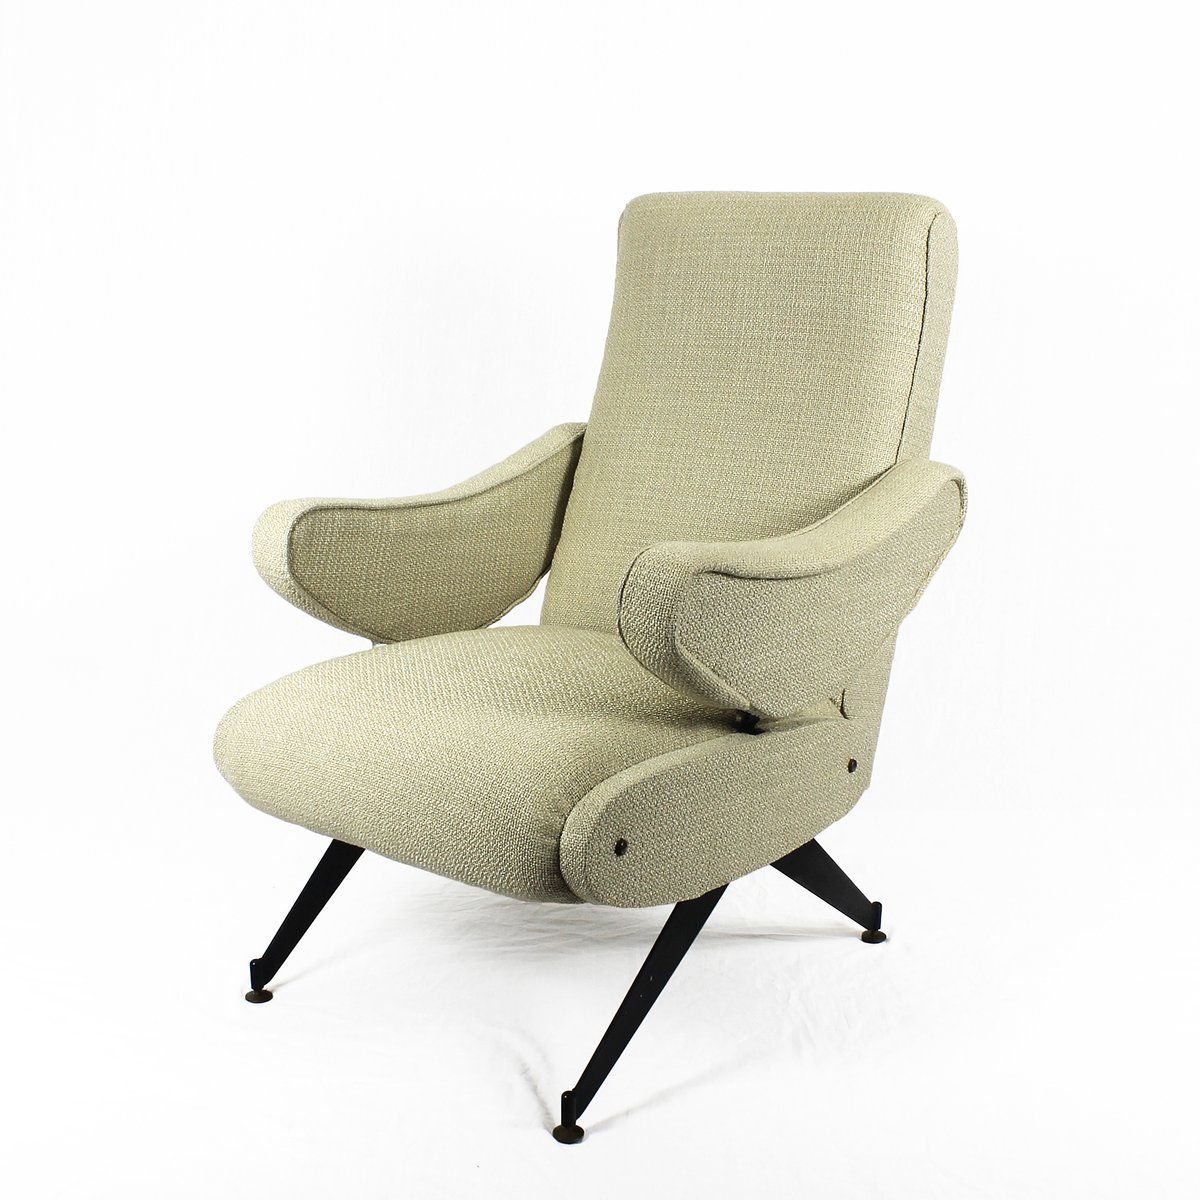 simple fauteuil inclinable de mobilifico oscar gigante italie s with fauteuil inclinable